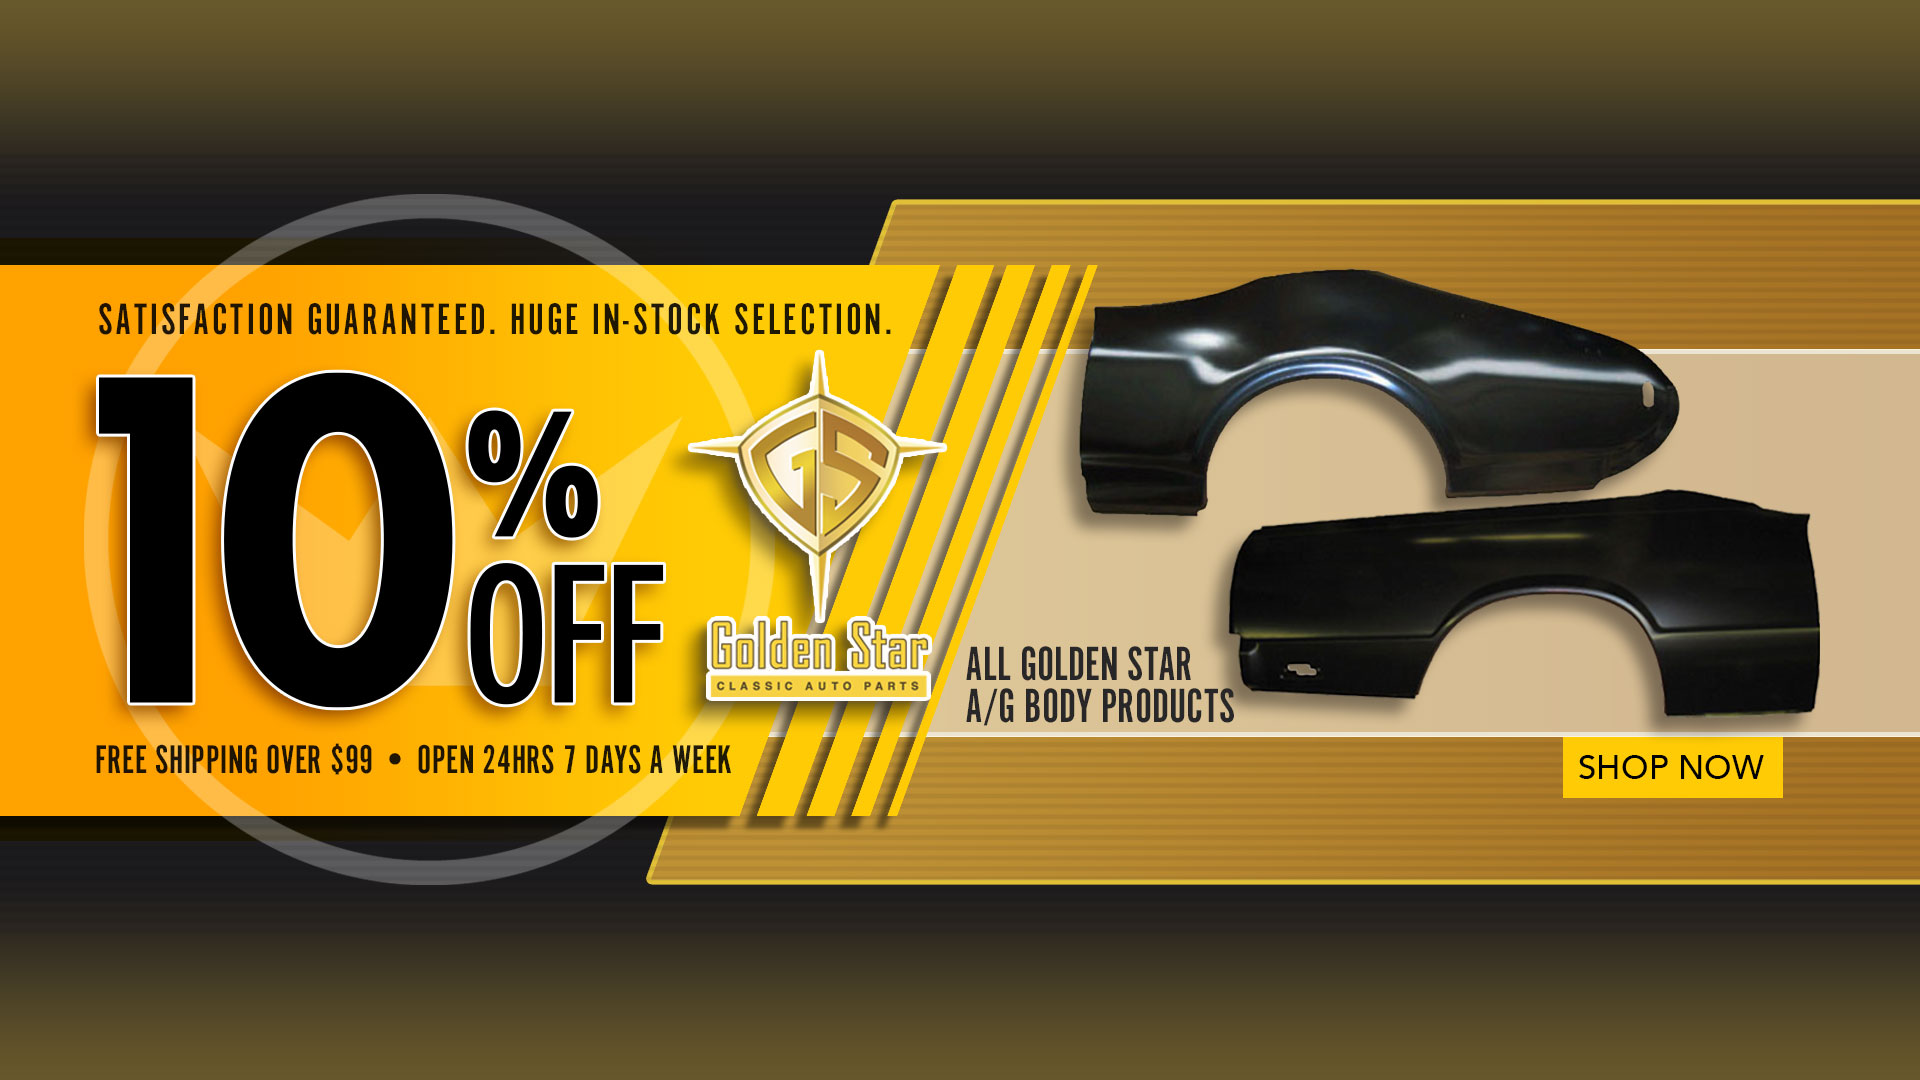 Save 10% on Golden Star A and G Body Products